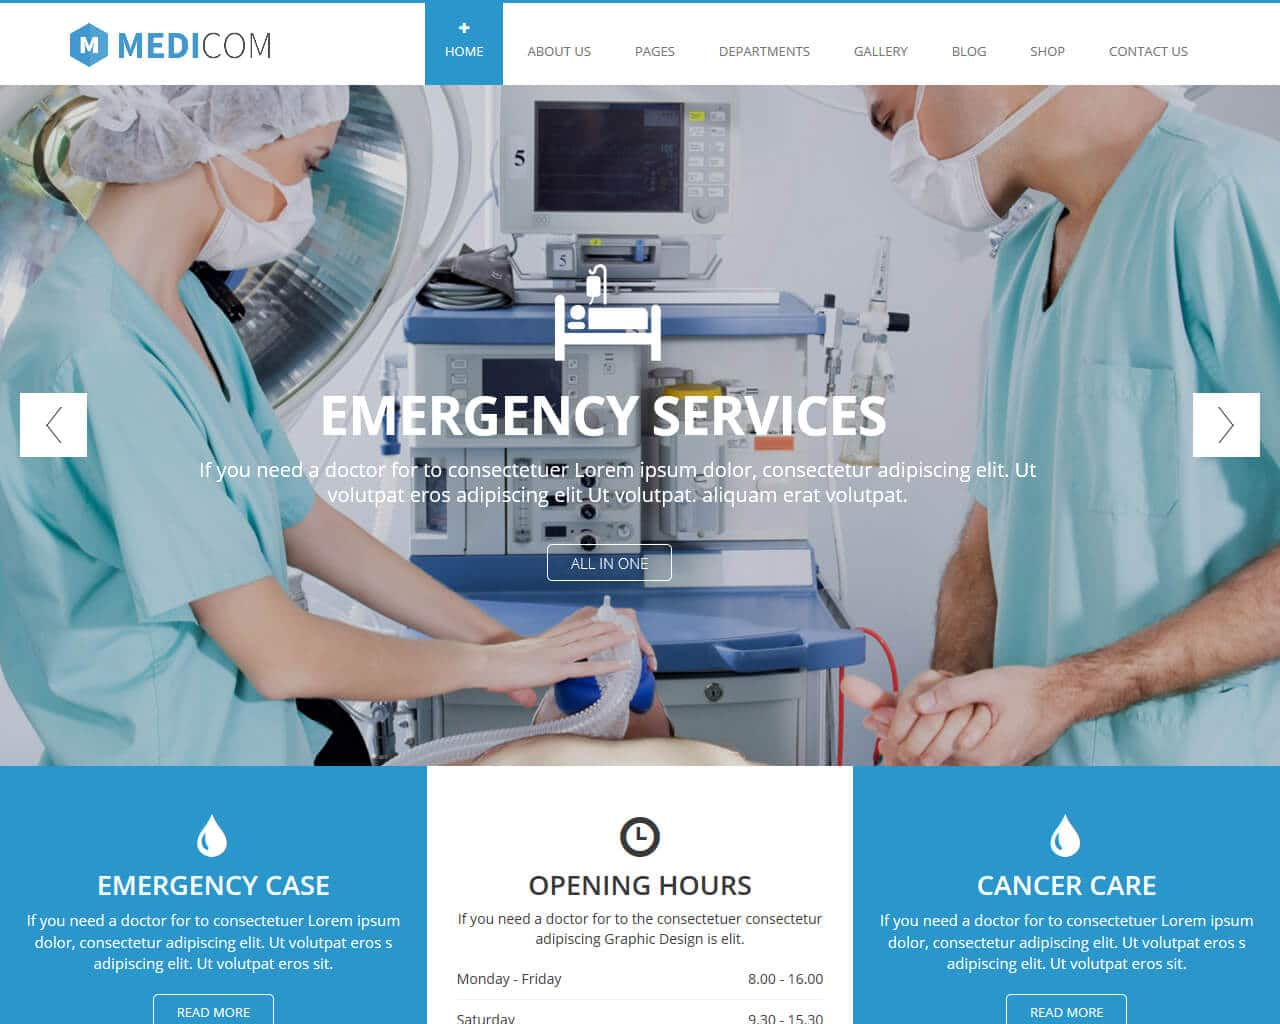 Medicom Website Template